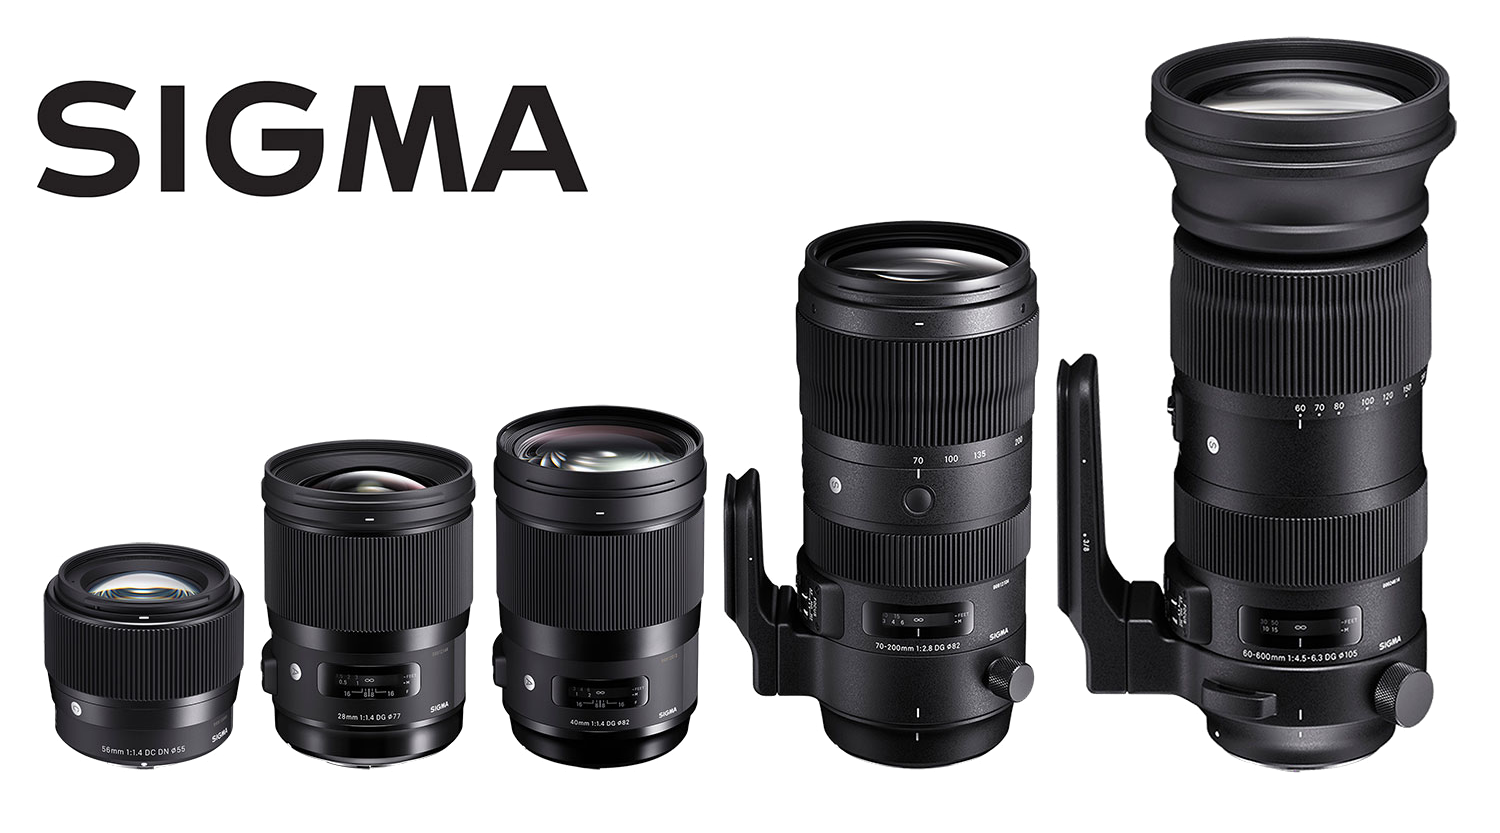 Sigma Imaging at Photokina